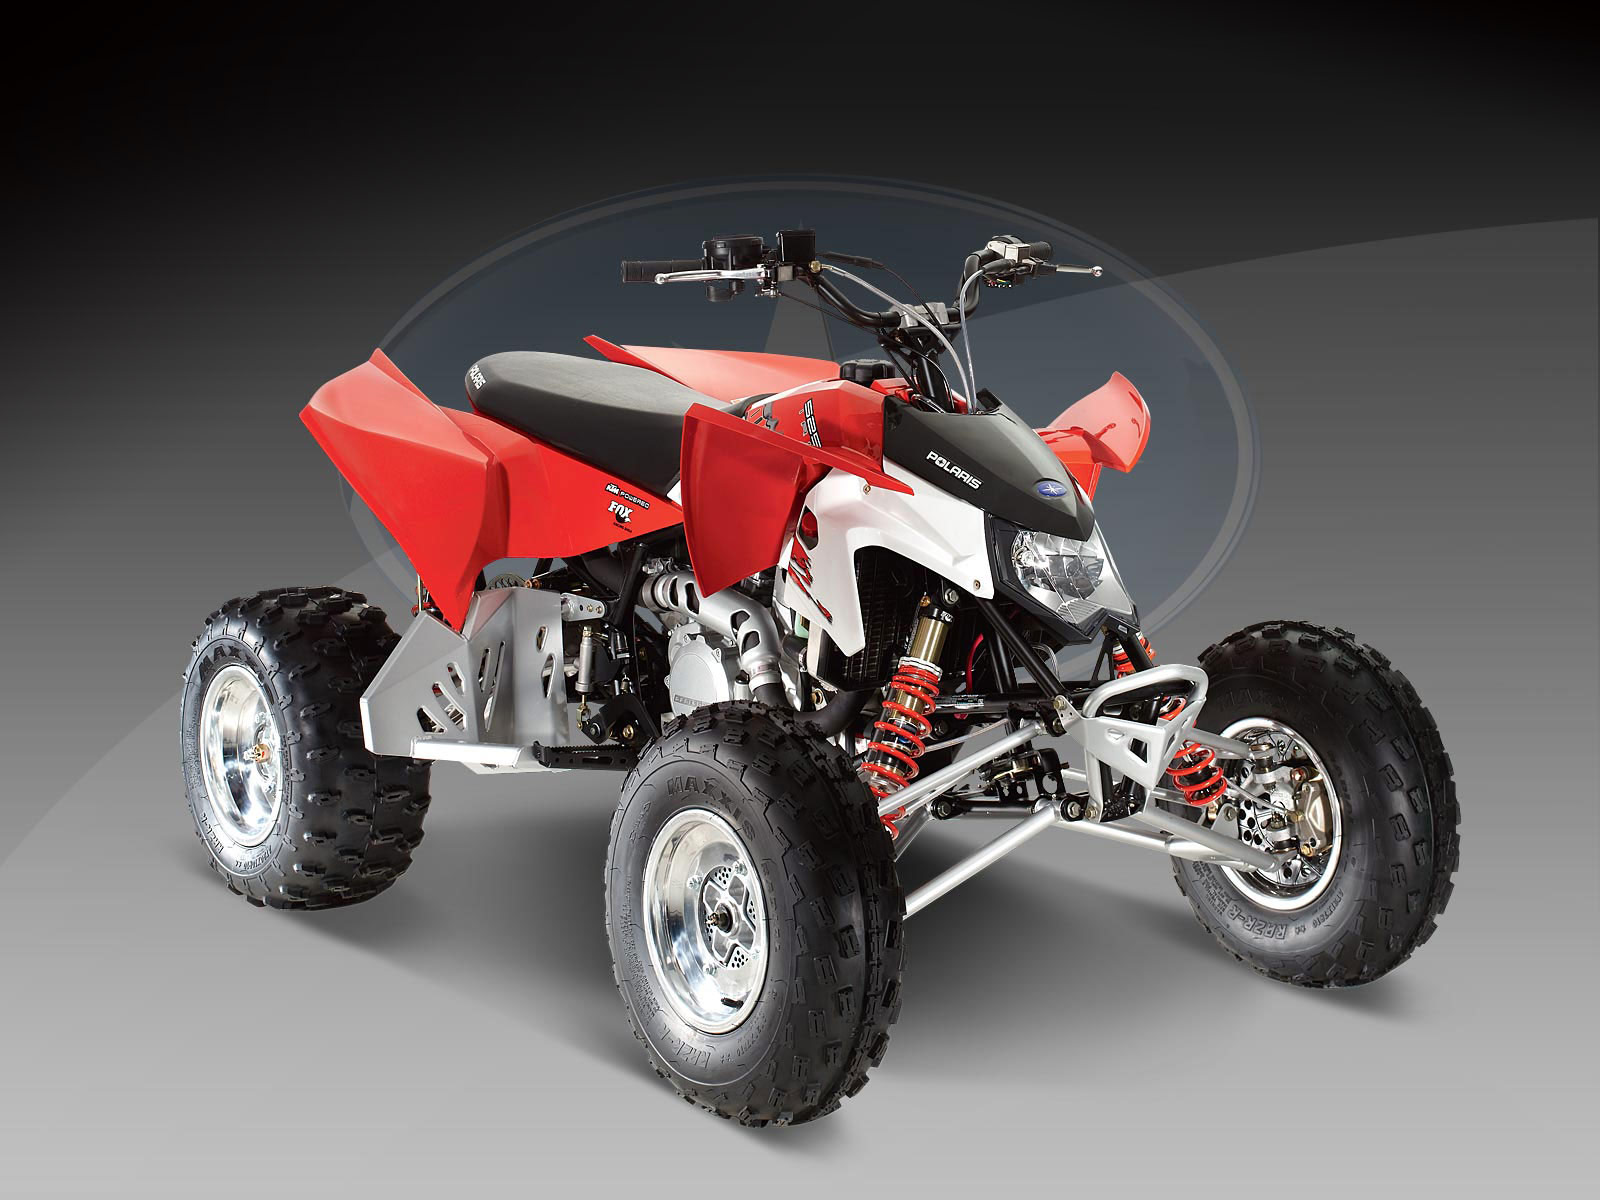 http://3.bp.blogspot.com/--0Yh55DDnWw/TultdSaiMwI/AAAAAAAAKu4/iTbV4l6jeCw/s1600/2010-Polaris-Outlaw-525-IRS-ATV-wallpapers_1.jpg